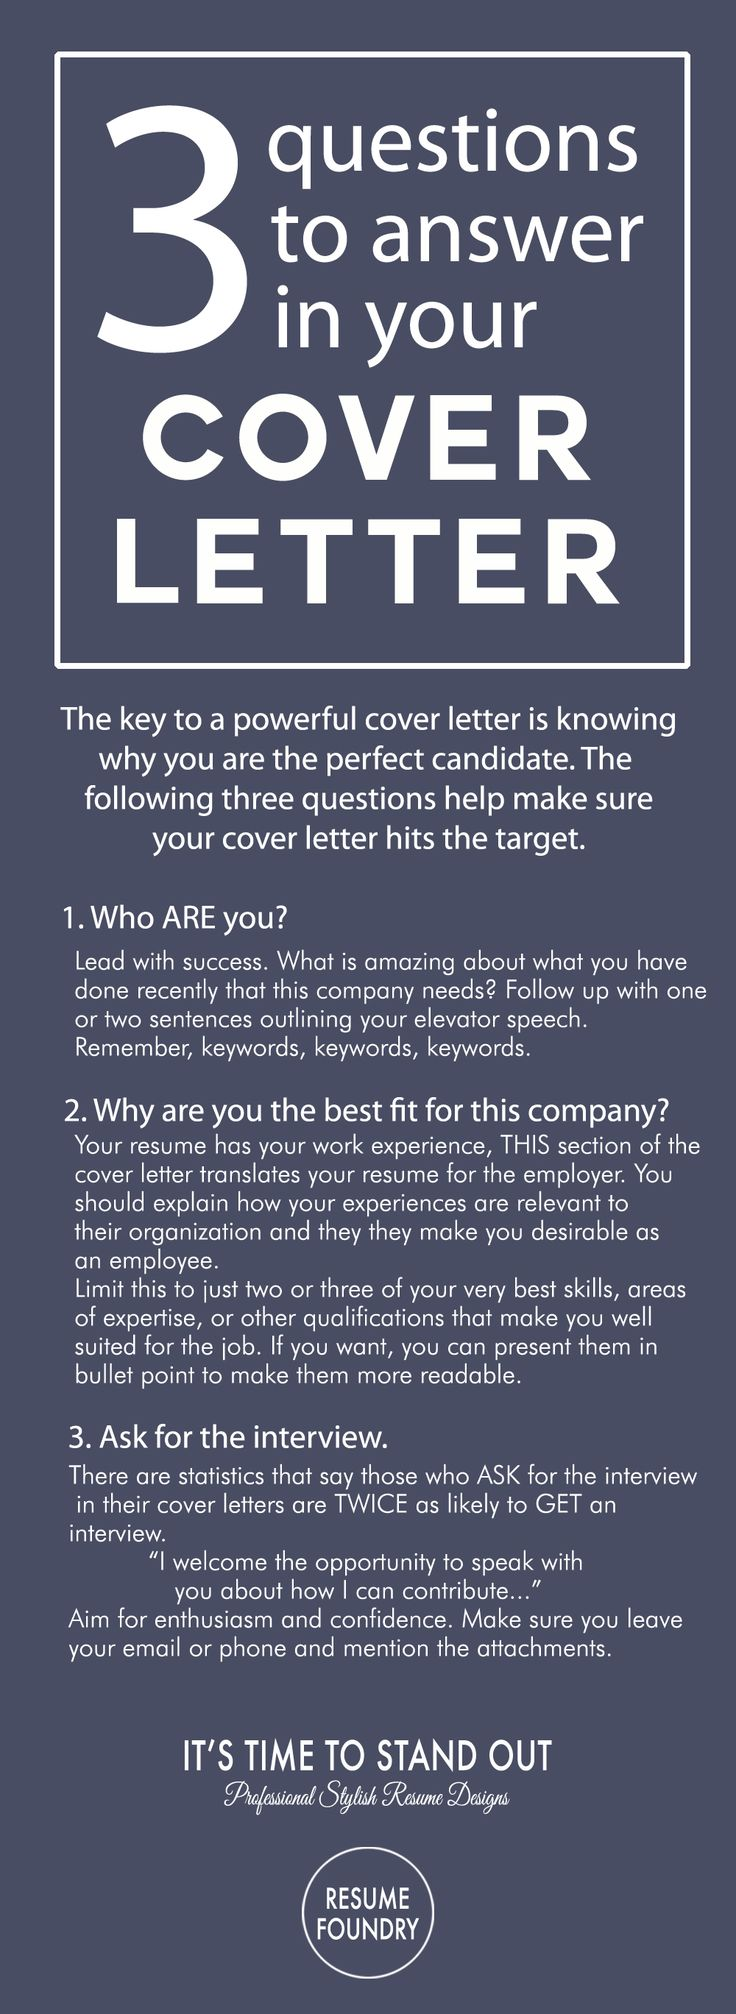 cover letter tips outline how to write a cover letter - Writing Resume Cover Letter